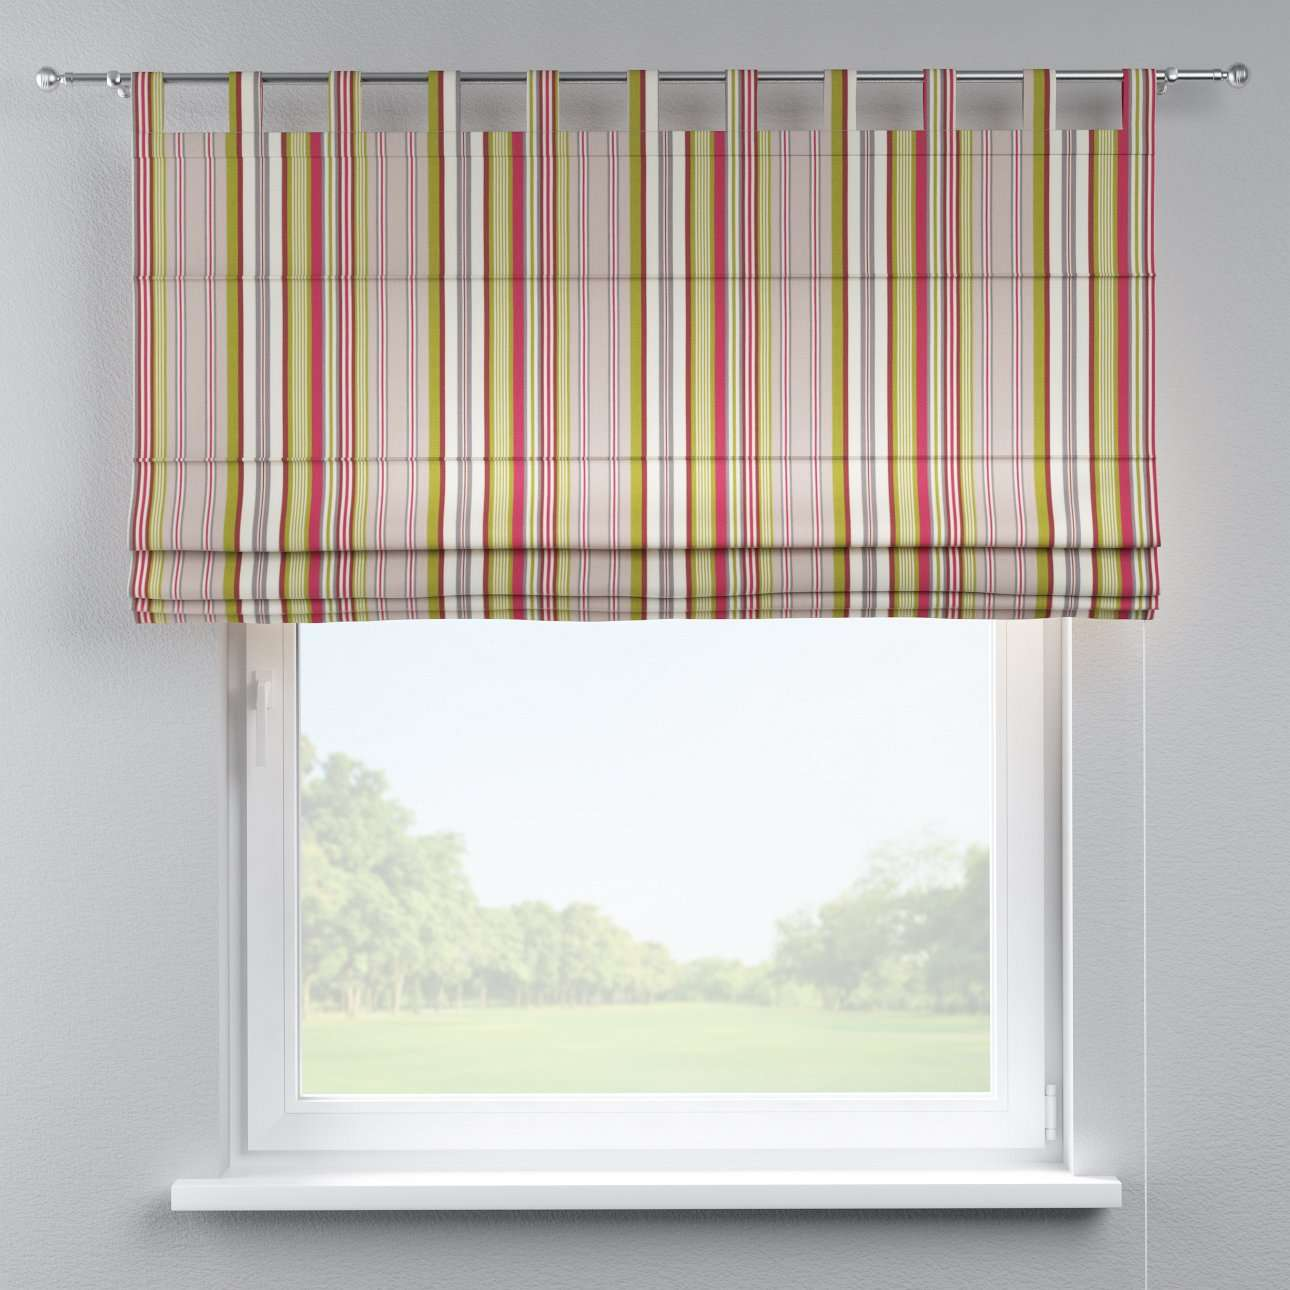 Verona tab top roman blind 80 x 170 cm (31.5 x 67 inch) in collection Flowers, fabric: 311-16